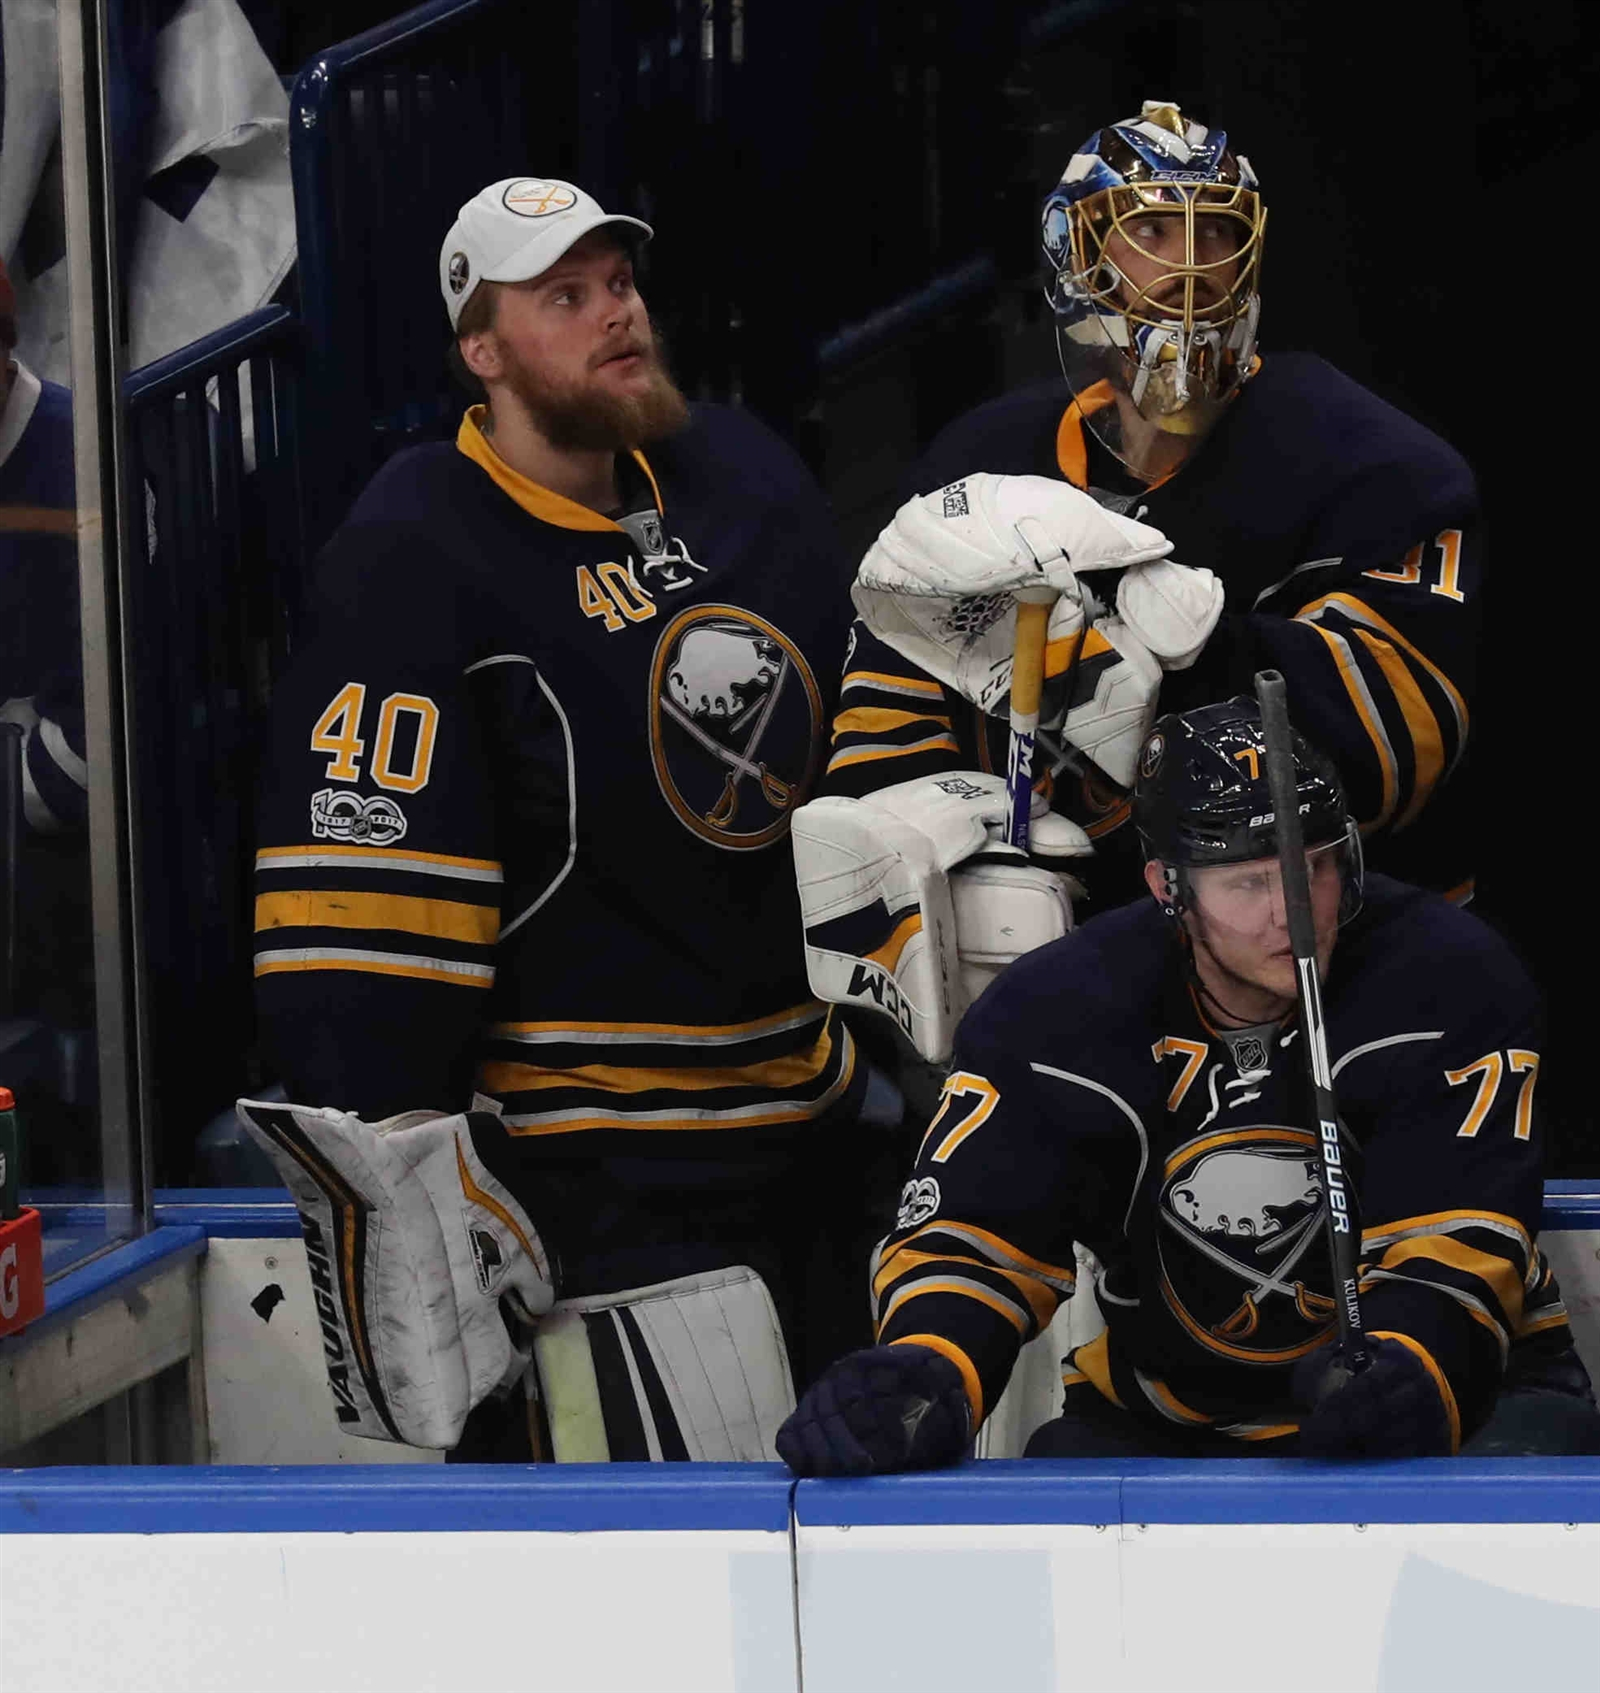 Too many nights, Sabres goalies Robin Lehner (40) and Anders Nilsson didn't like what they saw when they looked up at the scoreboard. (James P. McCoy/Buffalo News)